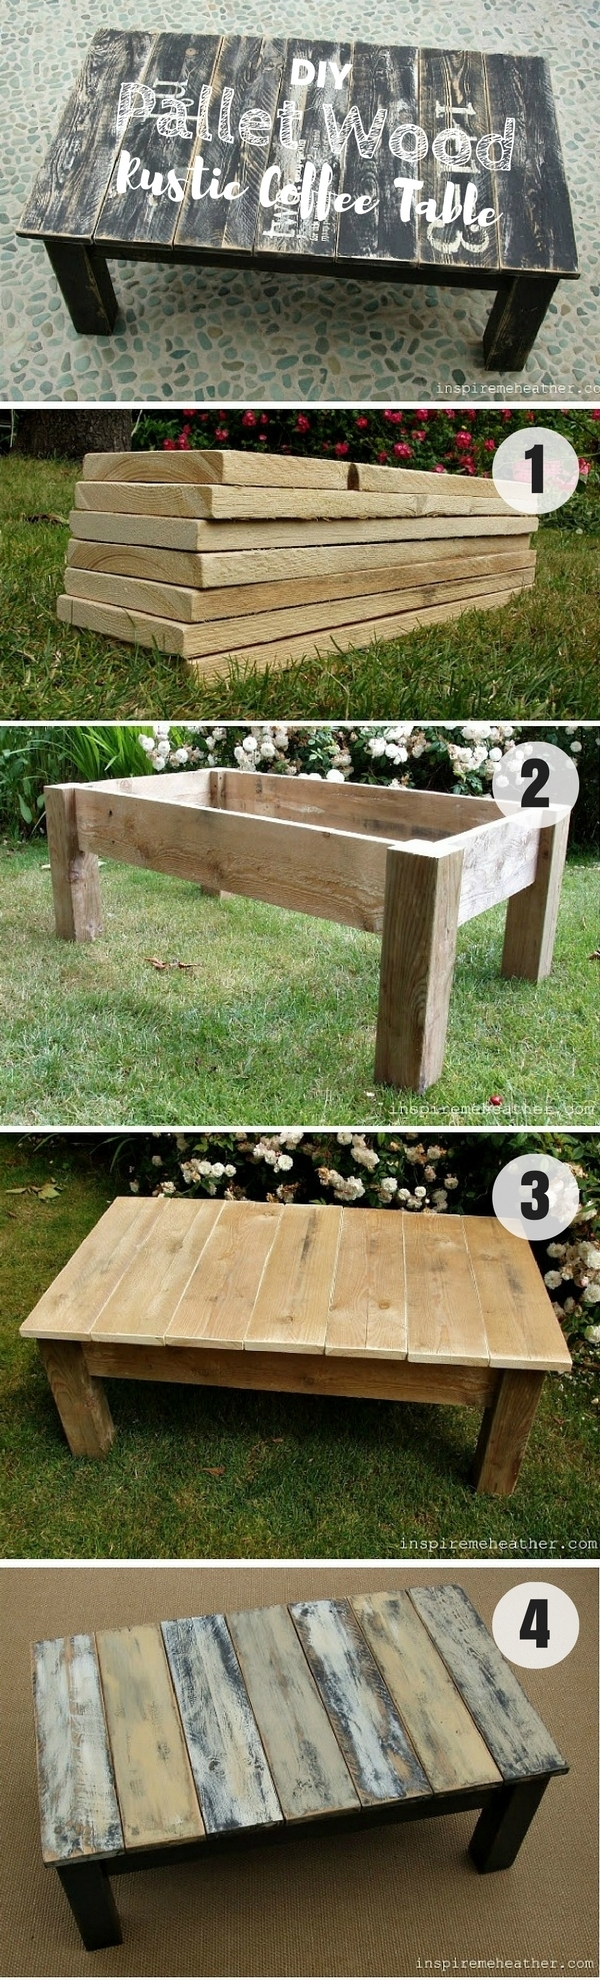 Diy Coffee Table - 40 Easy Ideas You Can Make On A Budget pertaining to Jelly Bean Coffee Tables (Image 8 of 30)